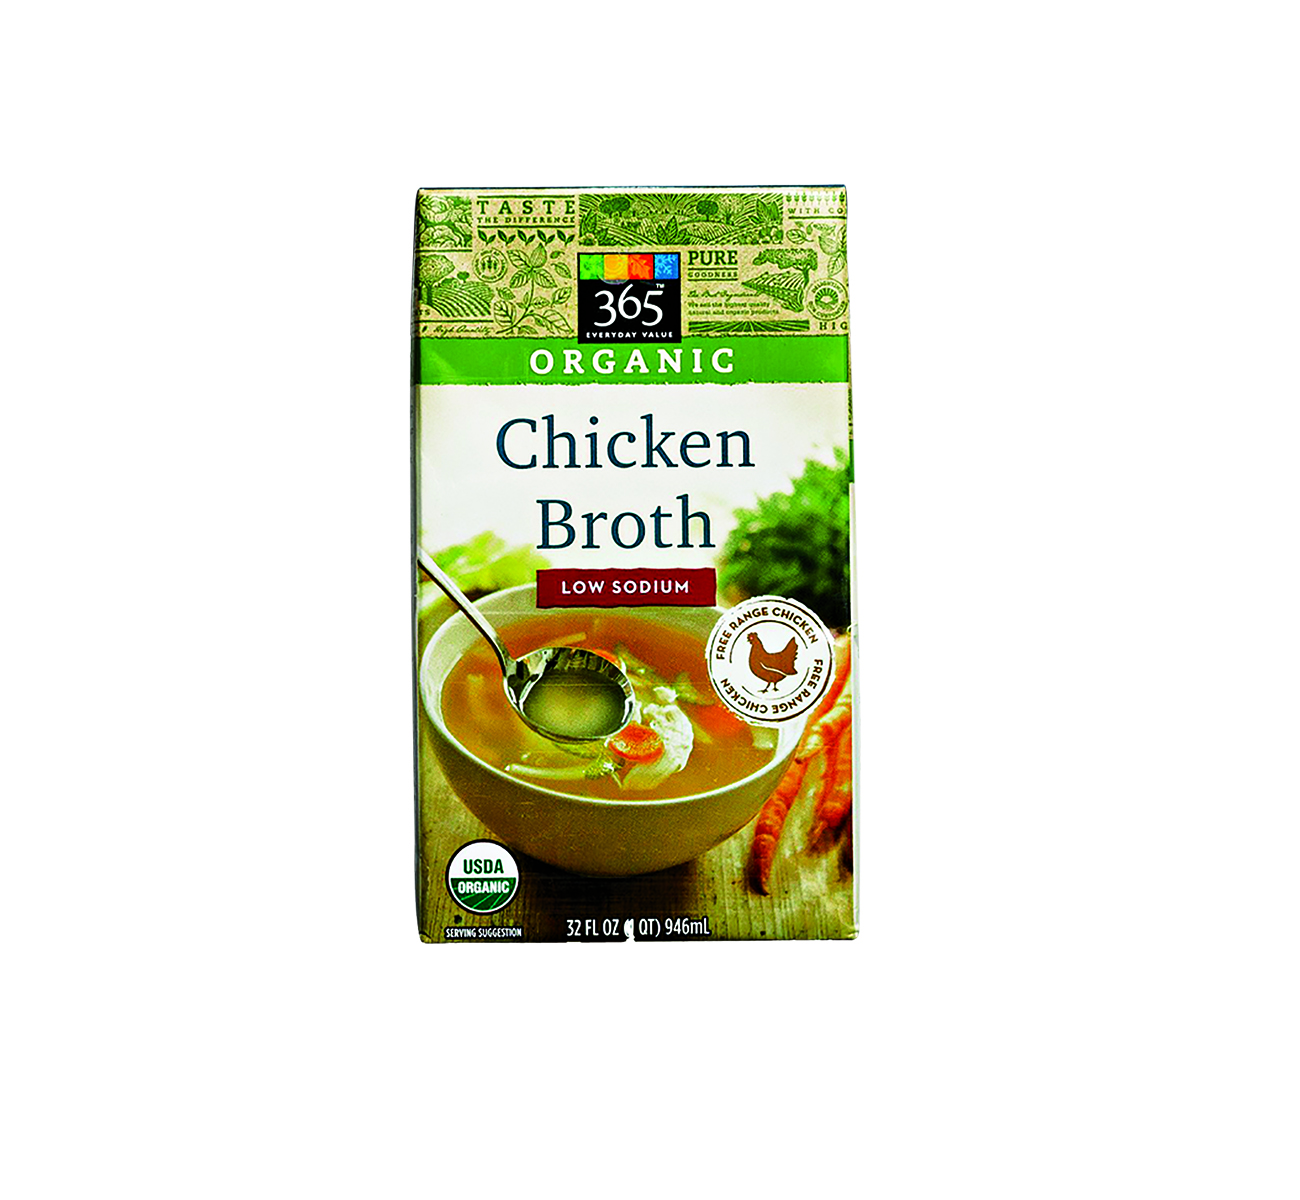 365 Low Sodium Chicken Broth